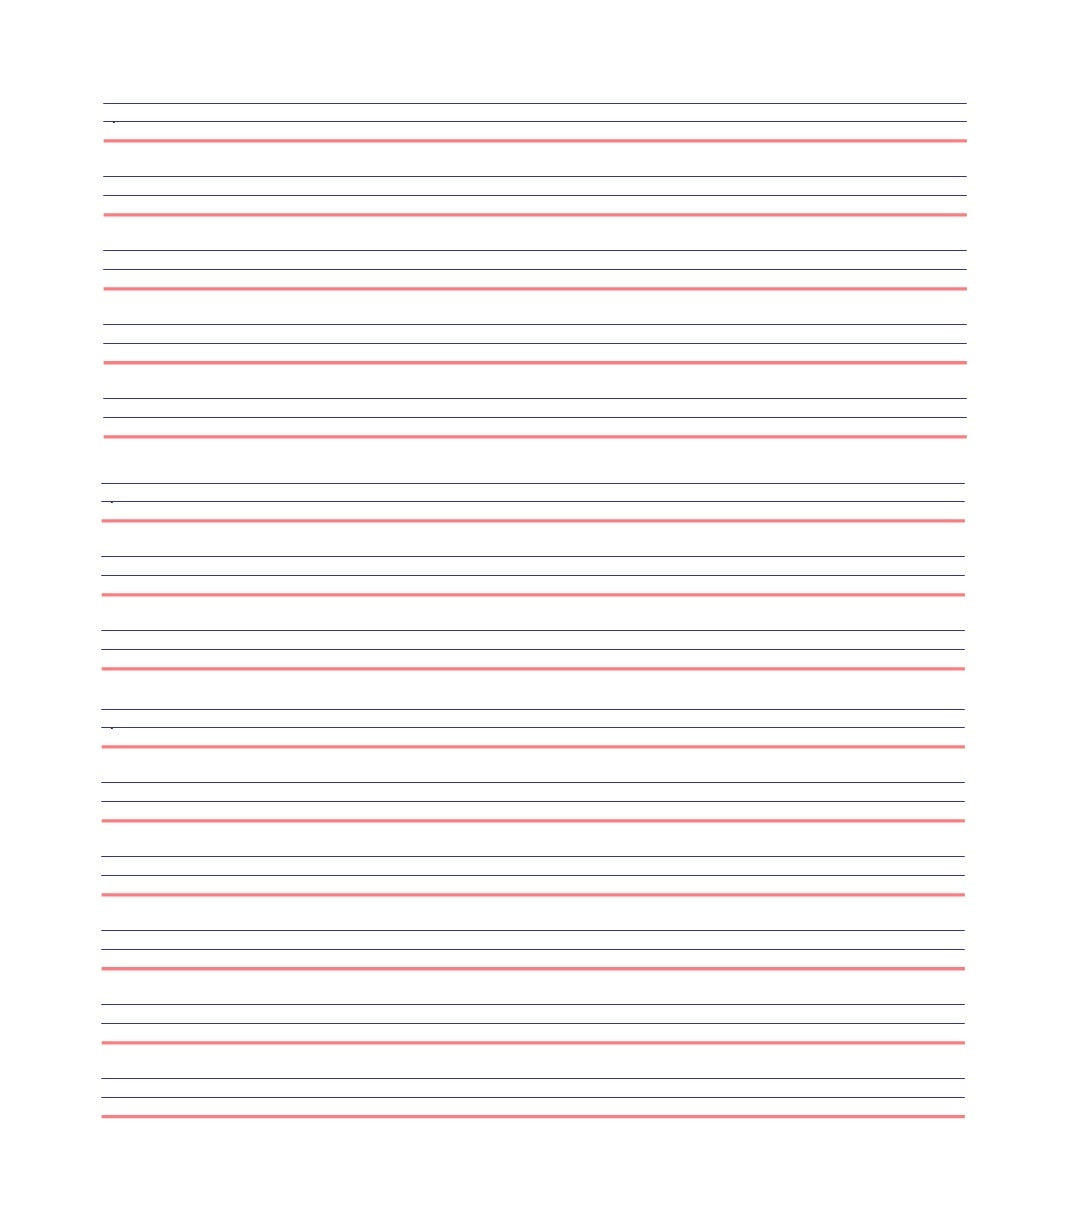 32 Printable Lined Paper Templates ᐅ Template Lab - Free Printable Lined Paper